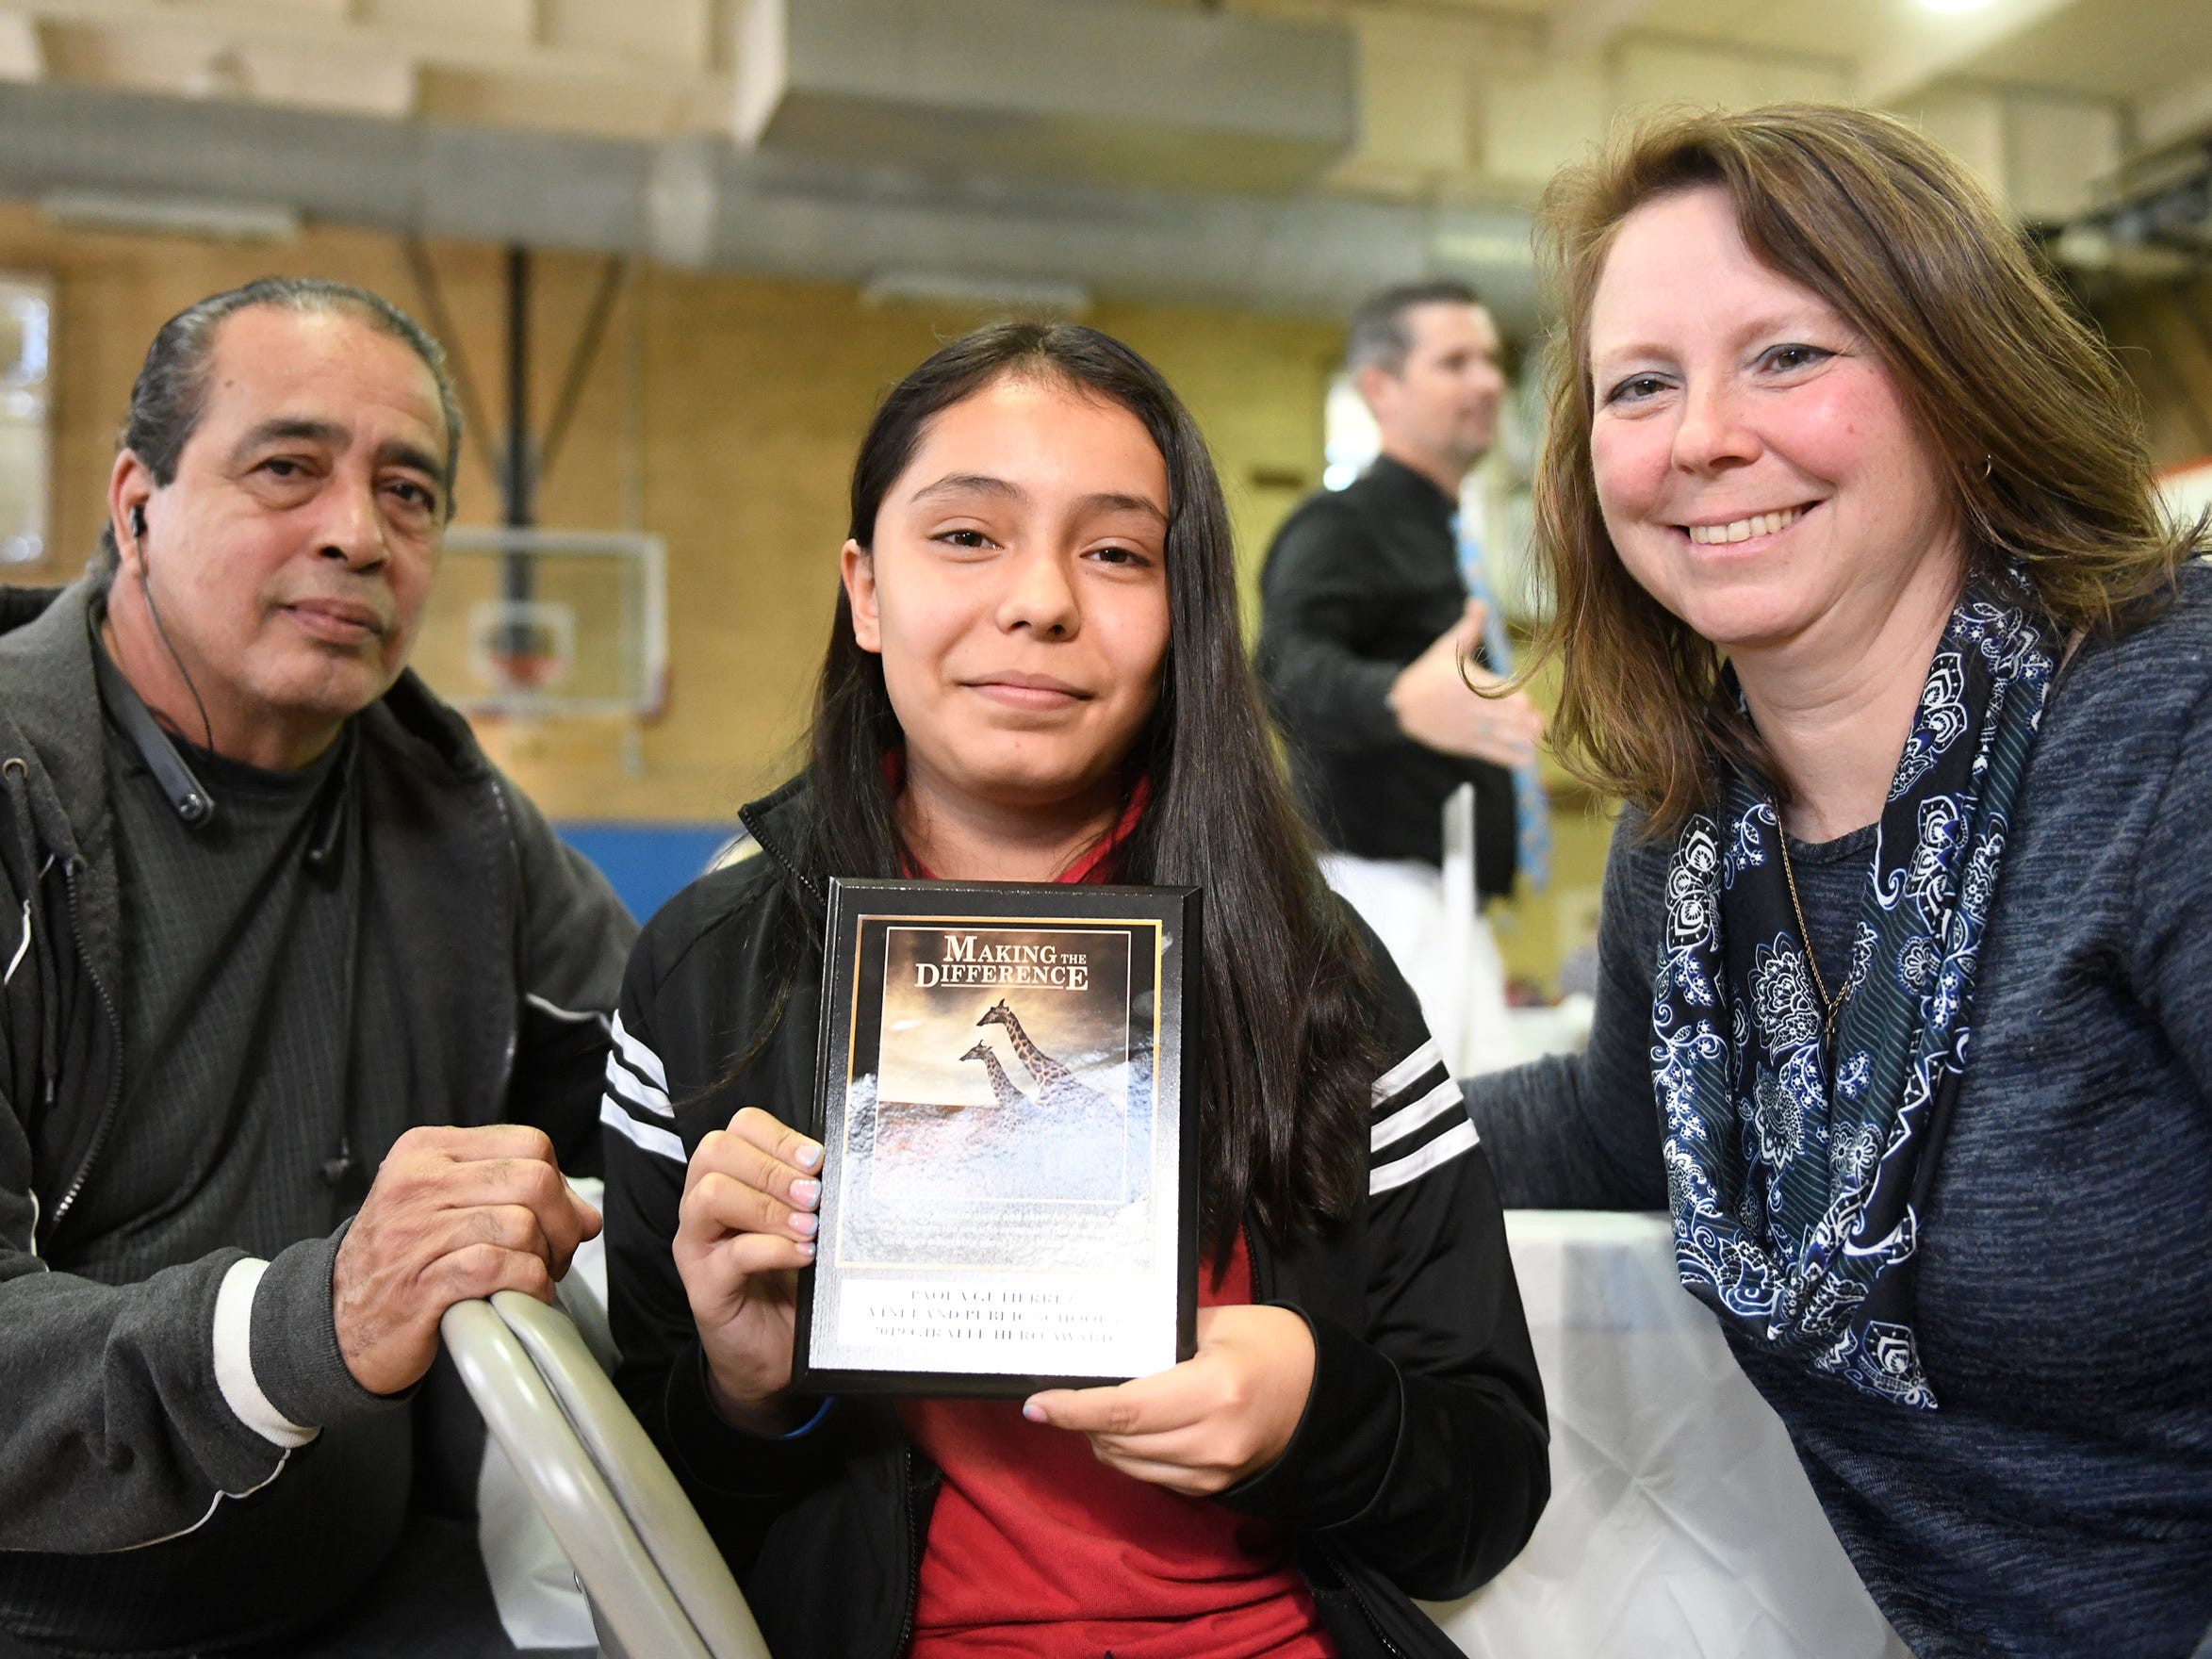 Sgt. Dominick Pilla Middle School student Paola Gutierrez was presented with a Giraffe Hero Award during a special ceremony on Wednesday, May 15, 2019.